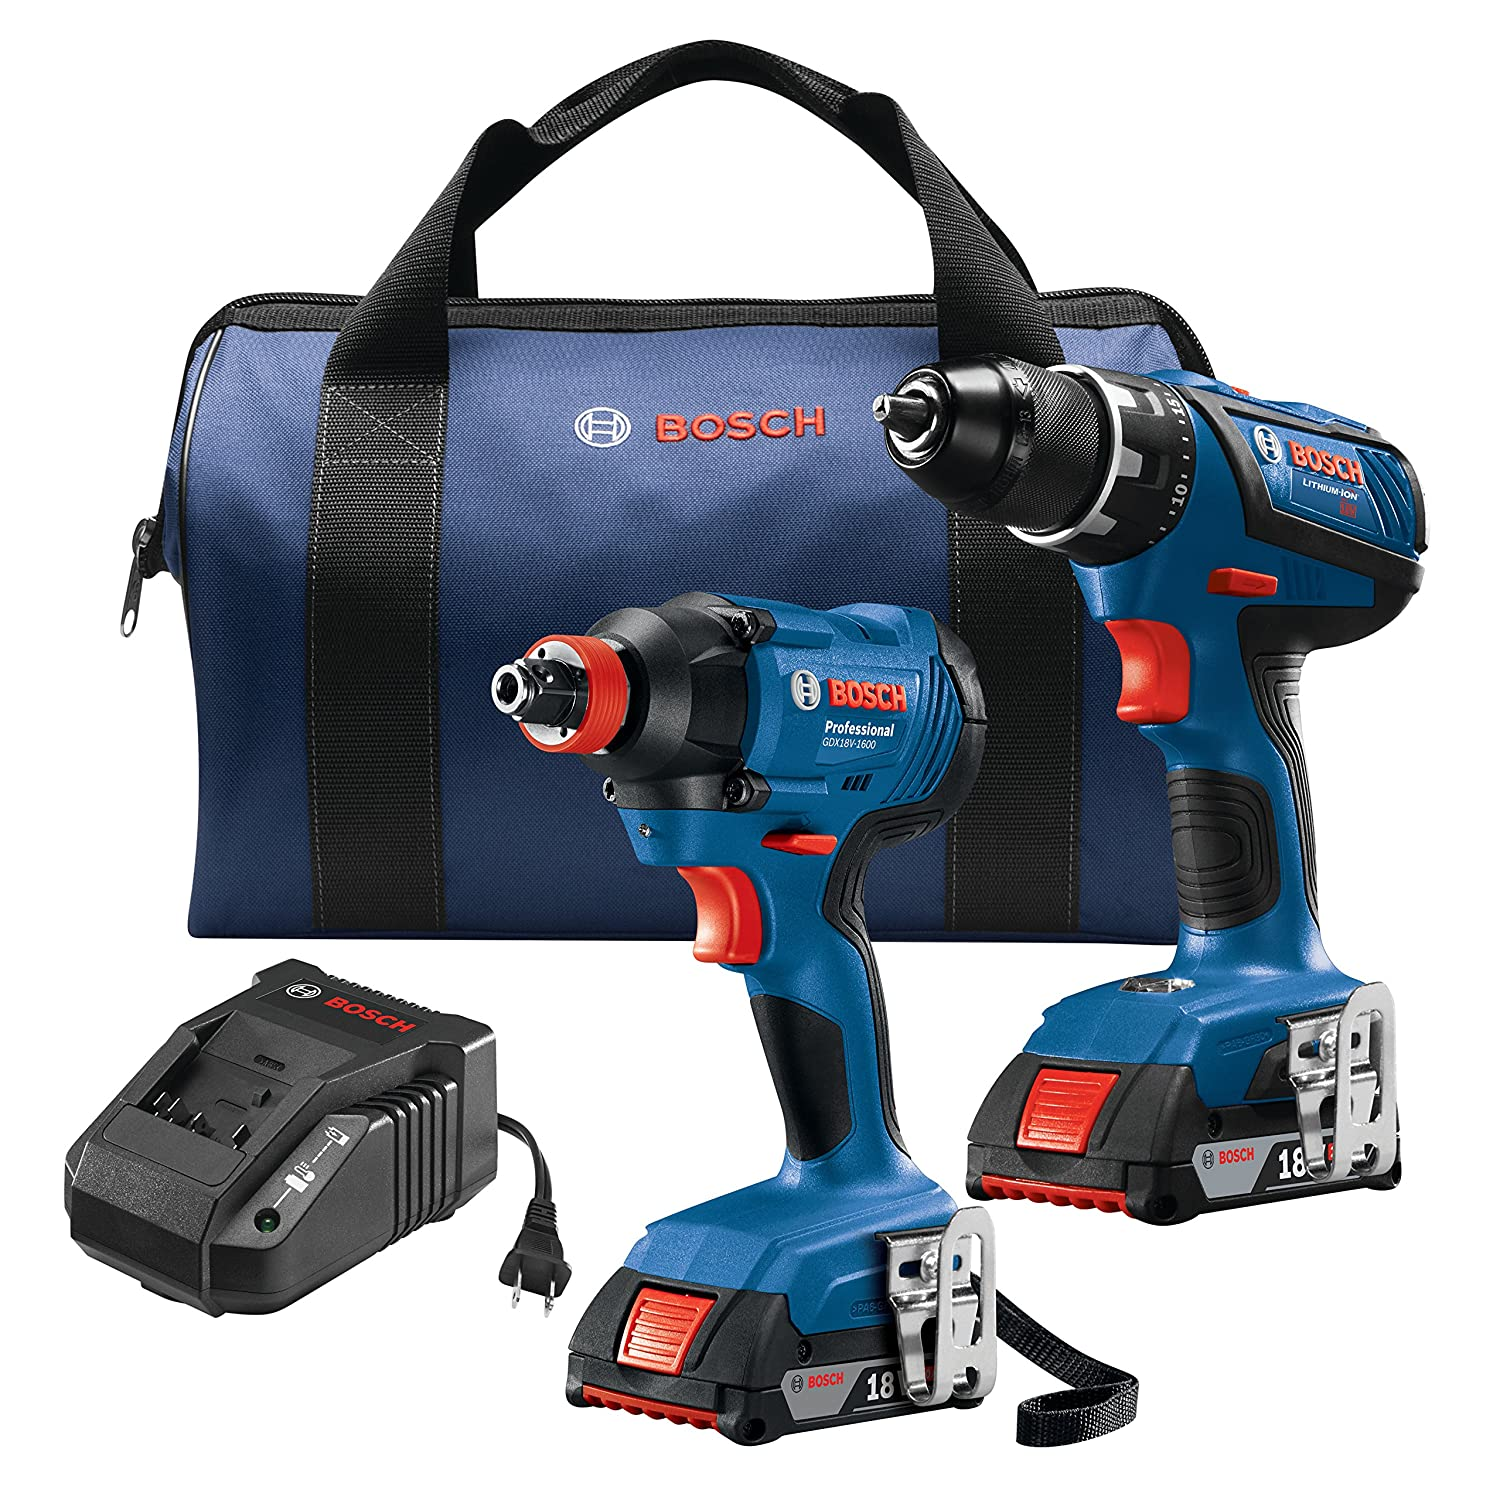 Bosch GXL18V 232B22 18V 2 Tool Kit with 1 2 In. Compact Tough Drill Driver 1 4 In. and 1 2 In. Two In One Bit Socket Impact Driver and 2 2.0 Ah Batteries